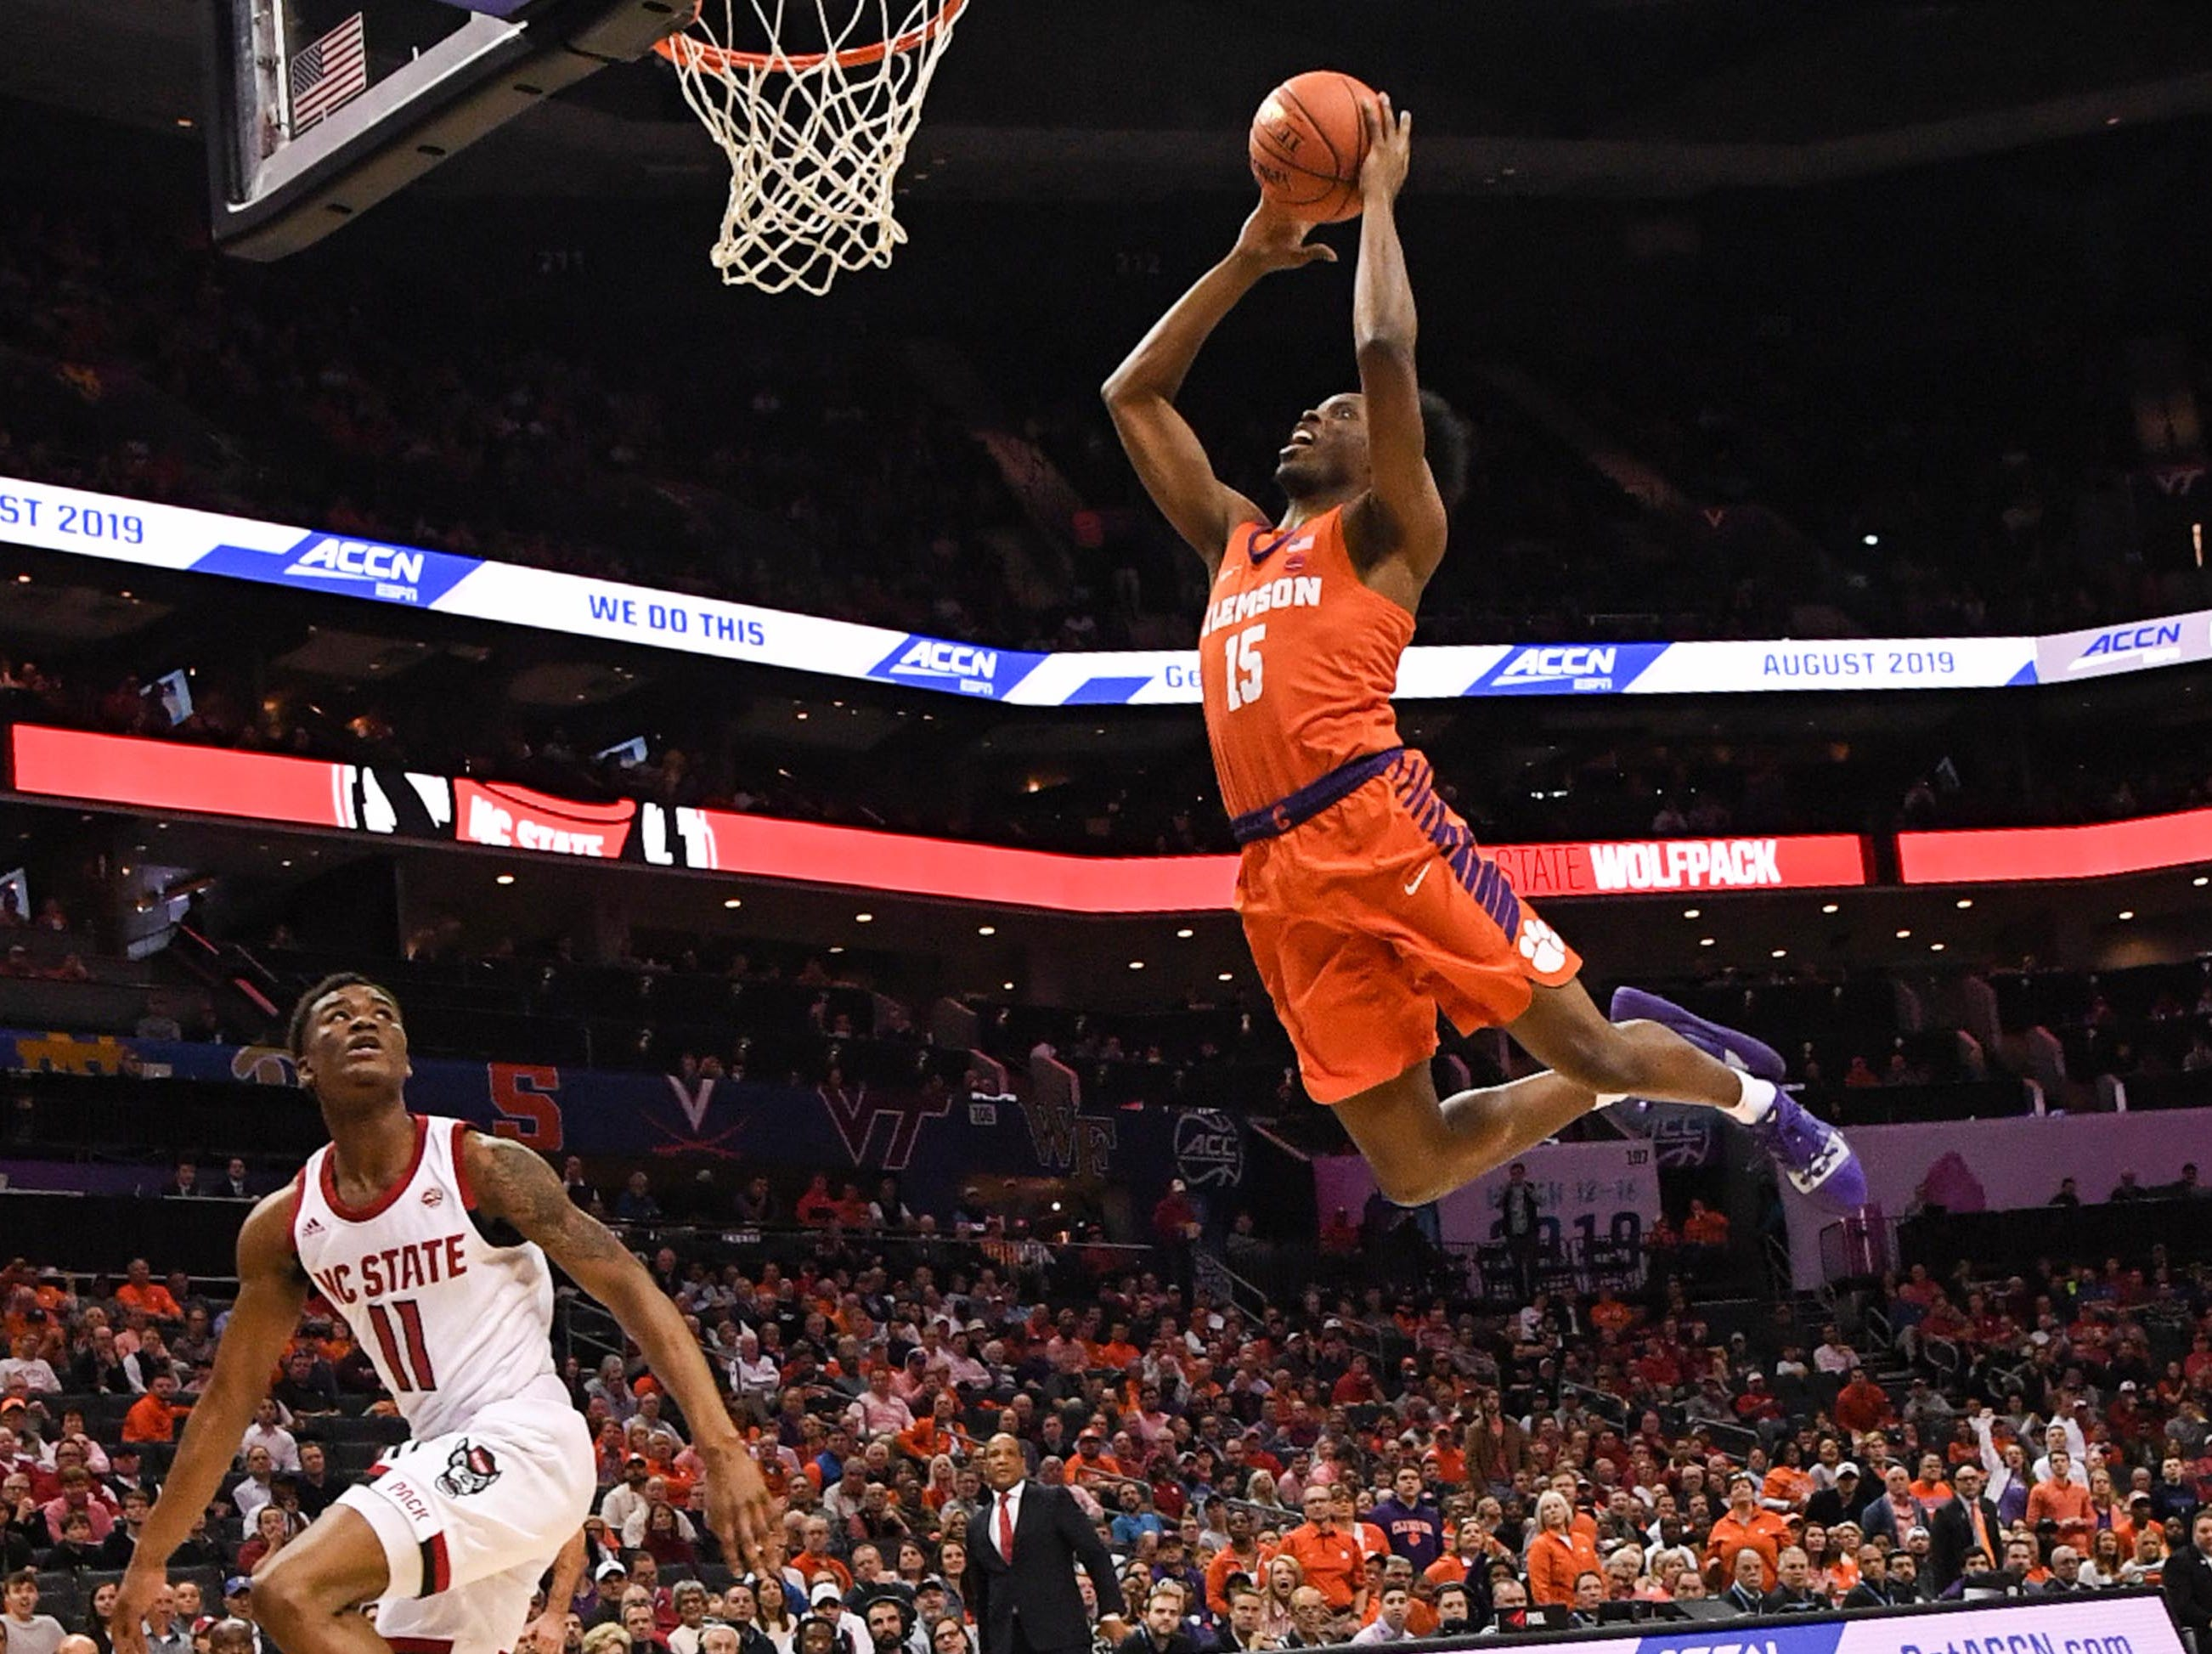 Clemson forward John Newman (15) dunks near N.C. State guard Markell Johnson(11) during the first half at the Spectrum Center in Charlotte, N.C. Tuesday, March 12, 2019.